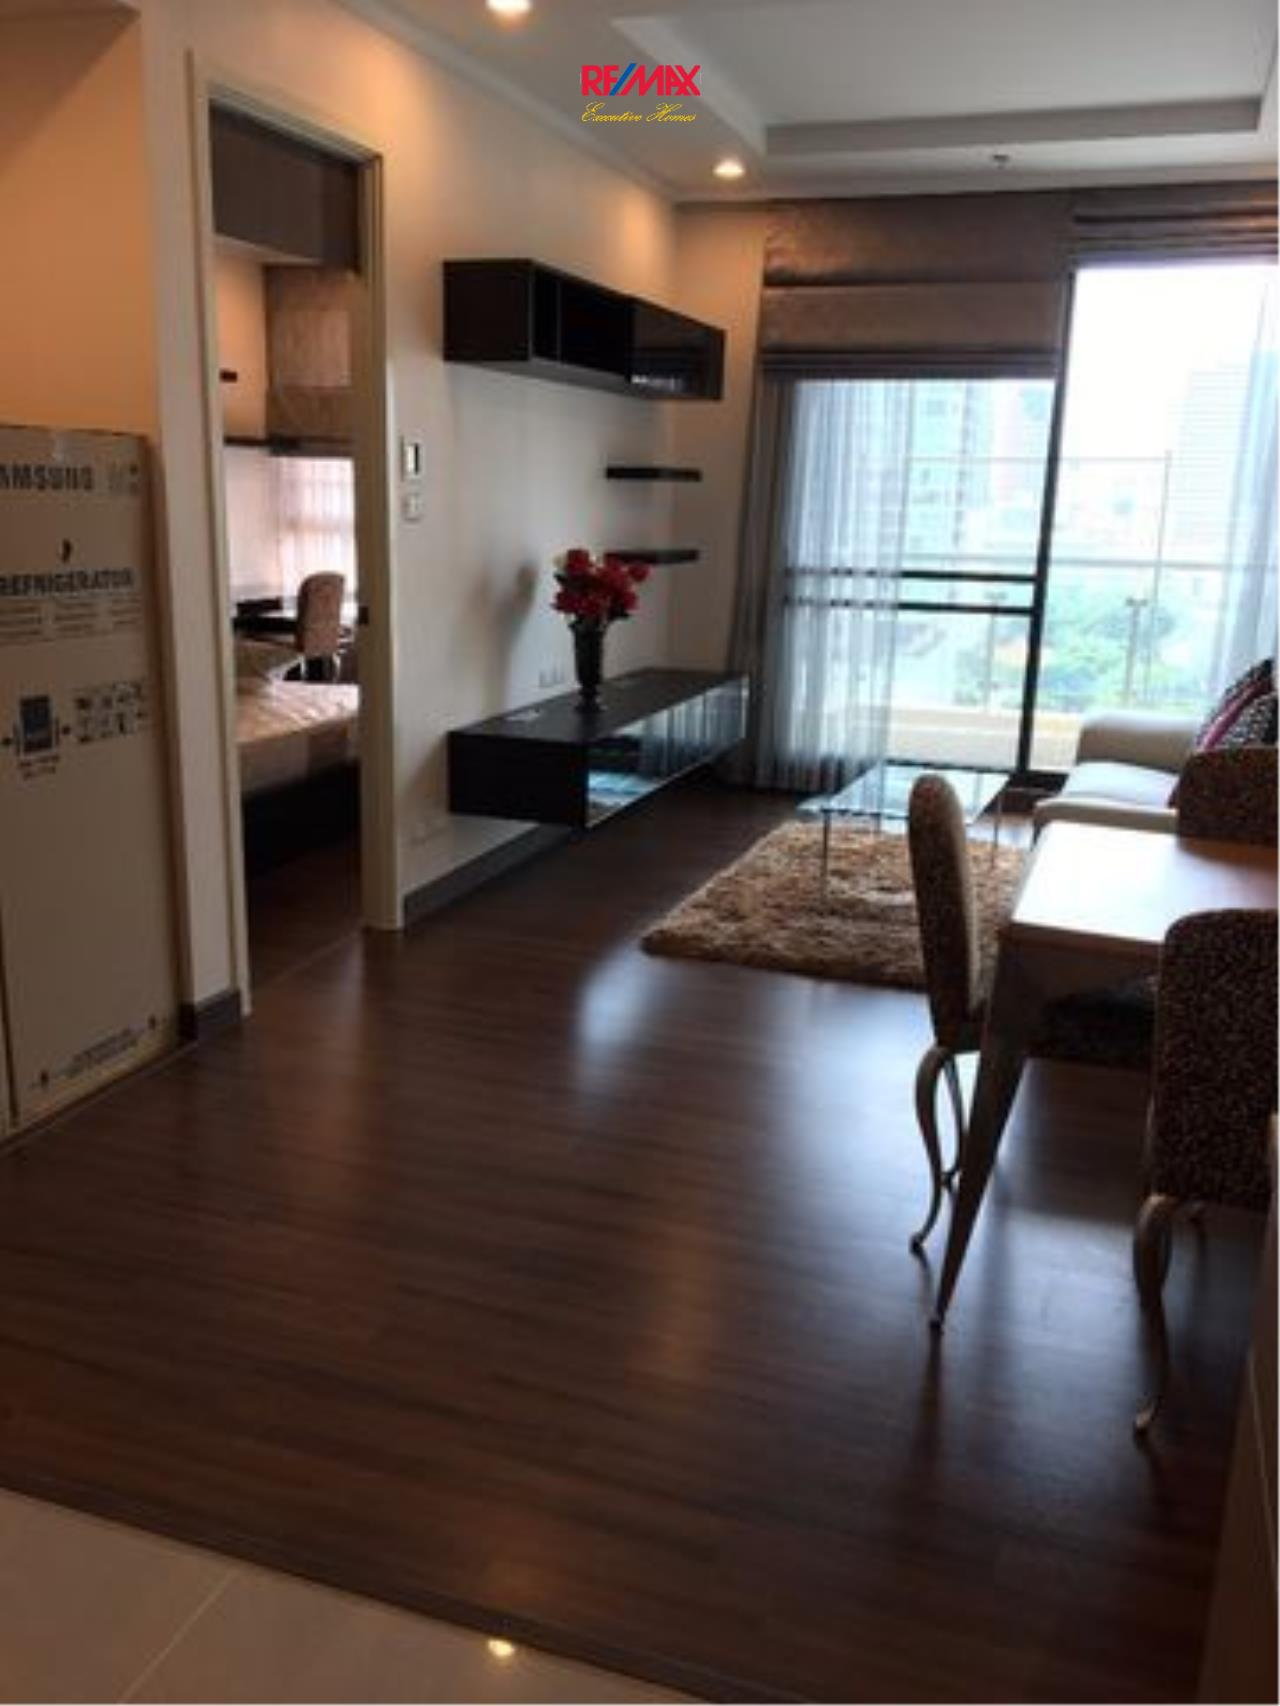 RE/MAX Executive Homes Agency's Spacious 1 Bedroom for Sale Supalai Elite Sathorn 1